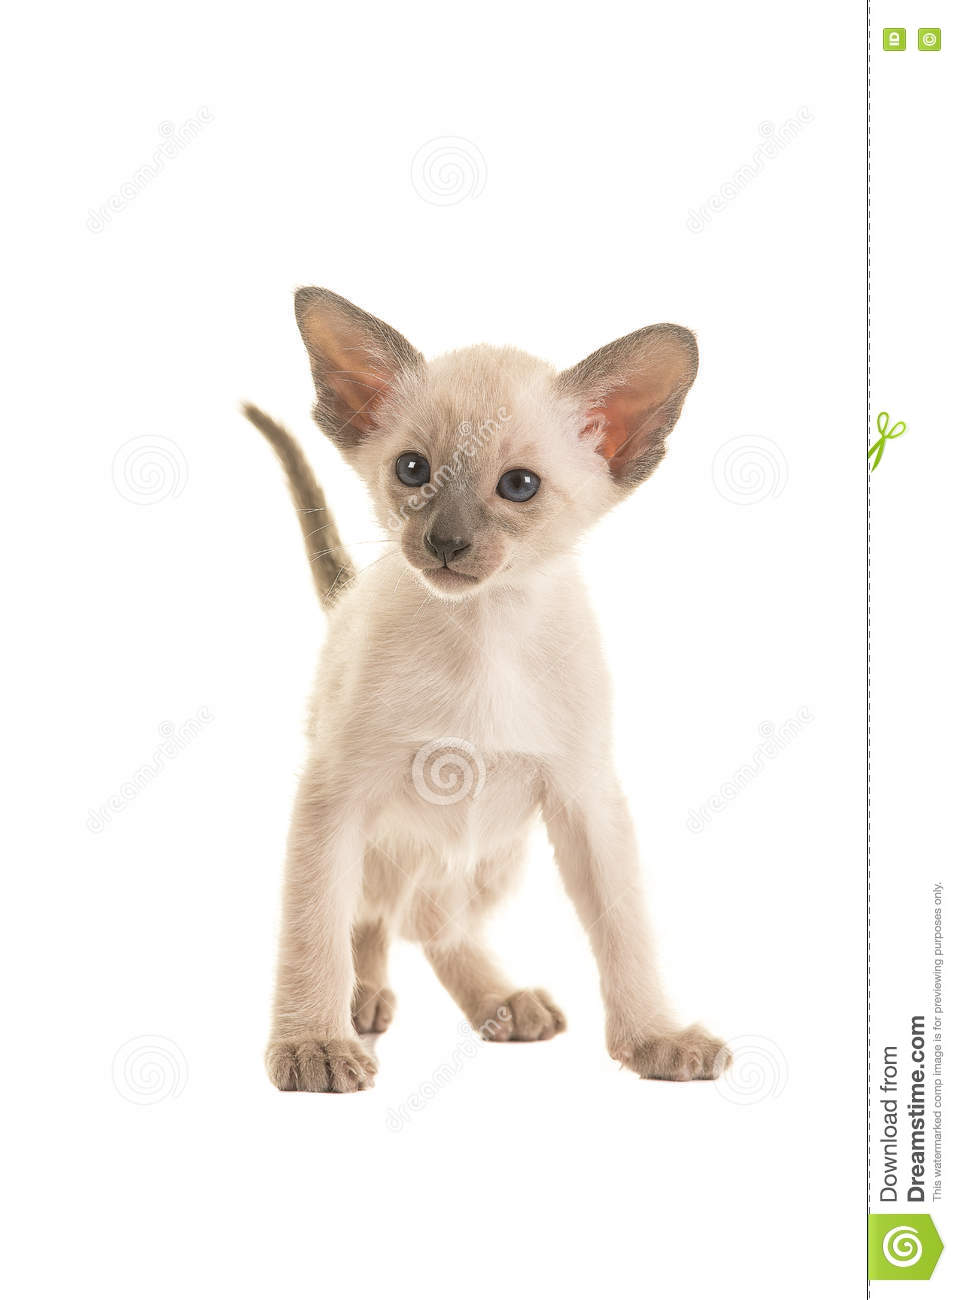 Seal Point Siamese Baby Cat Stock Image Image Of Kitten